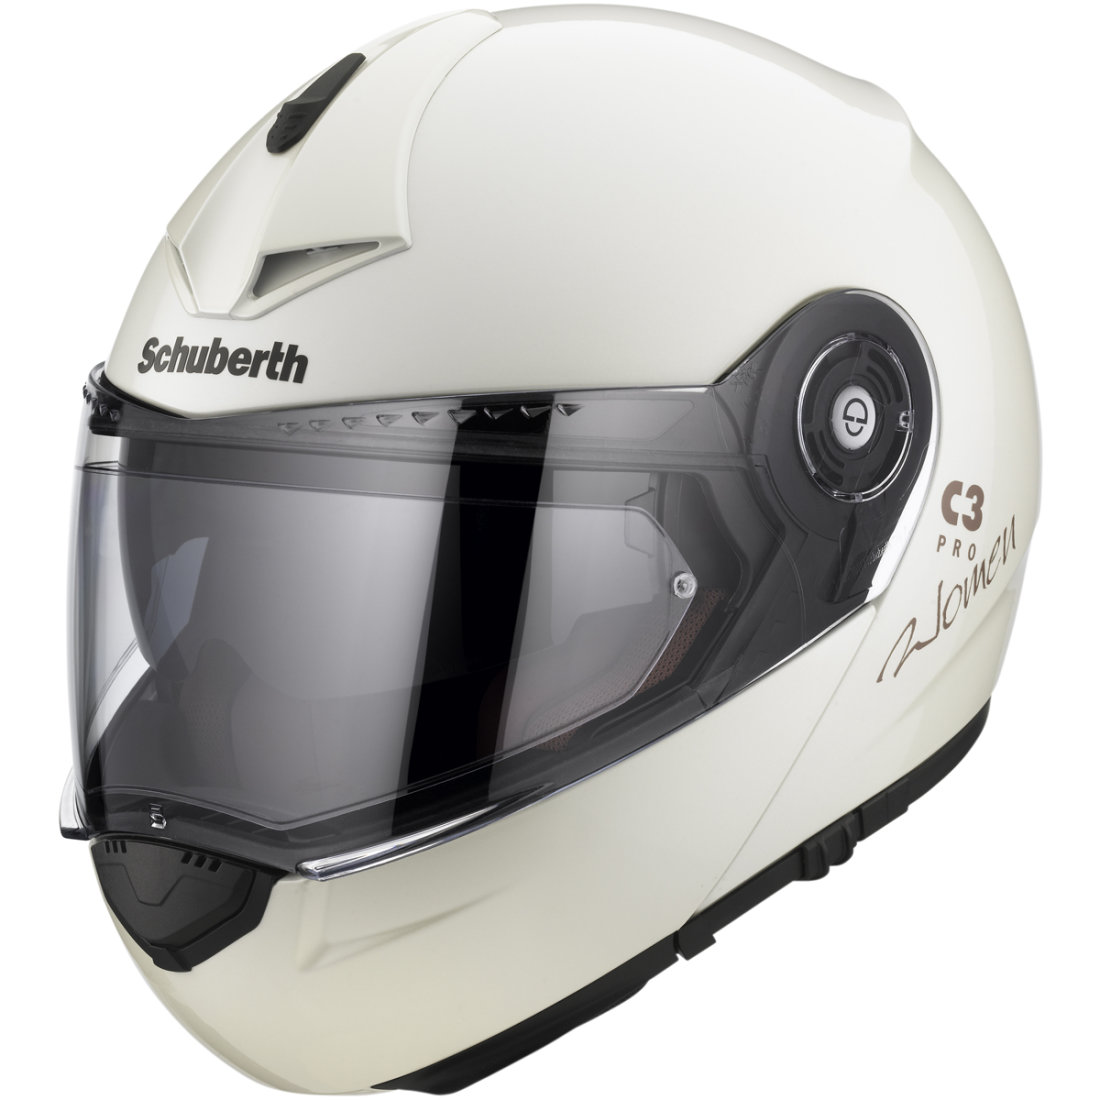 schuberth c3 pro lady pearl white helmet motocard. Black Bedroom Furniture Sets. Home Design Ideas